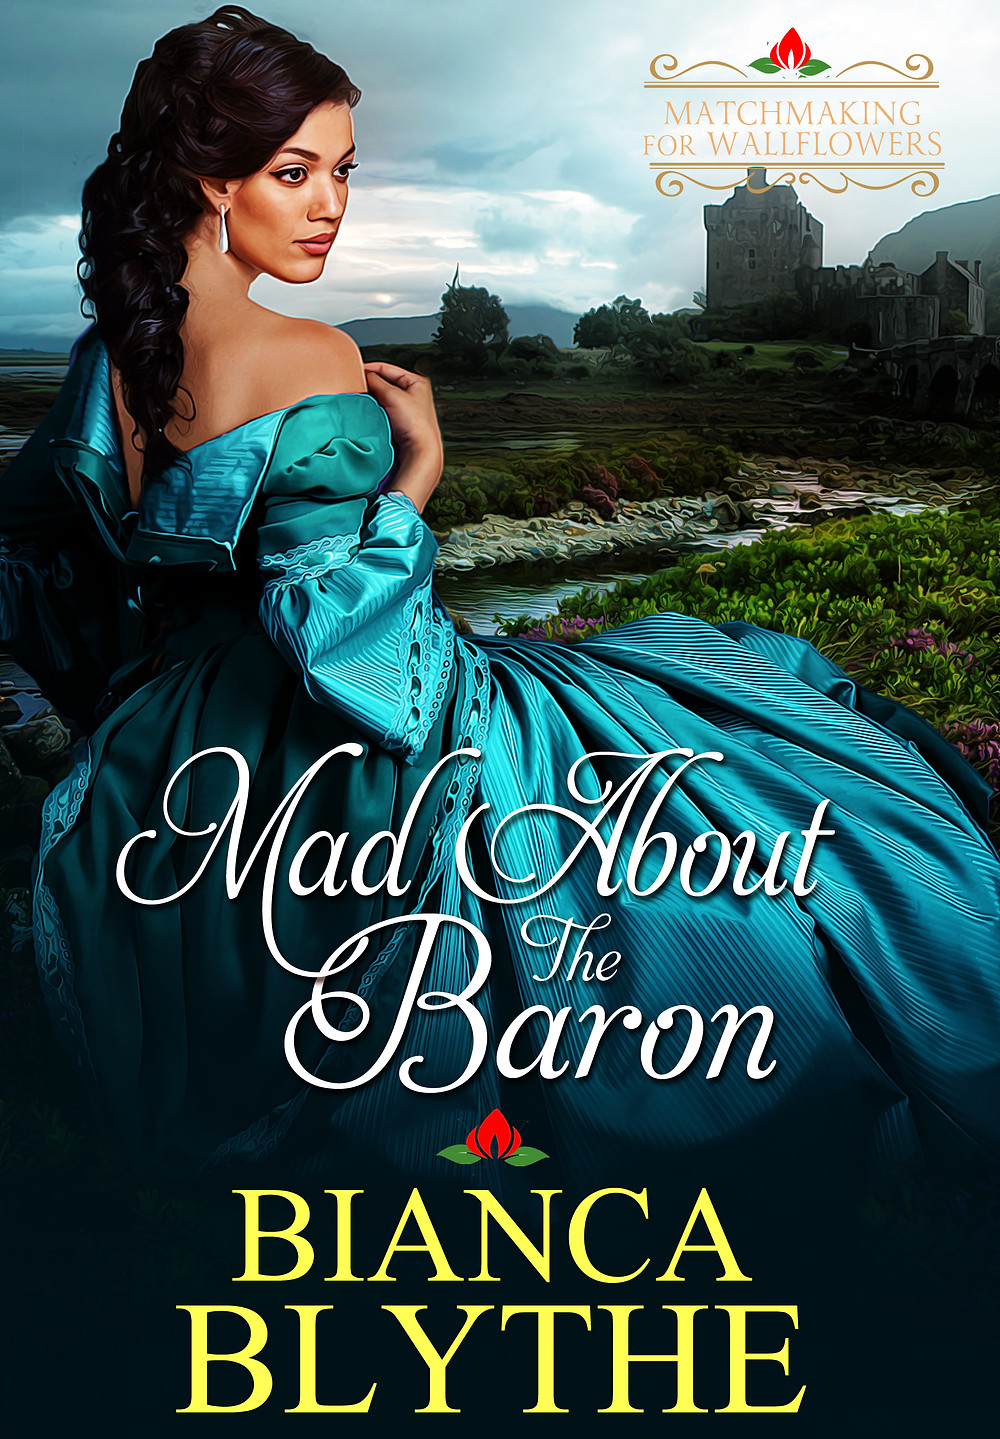 MAD ABOUT THE BARON by Bianca Blythe